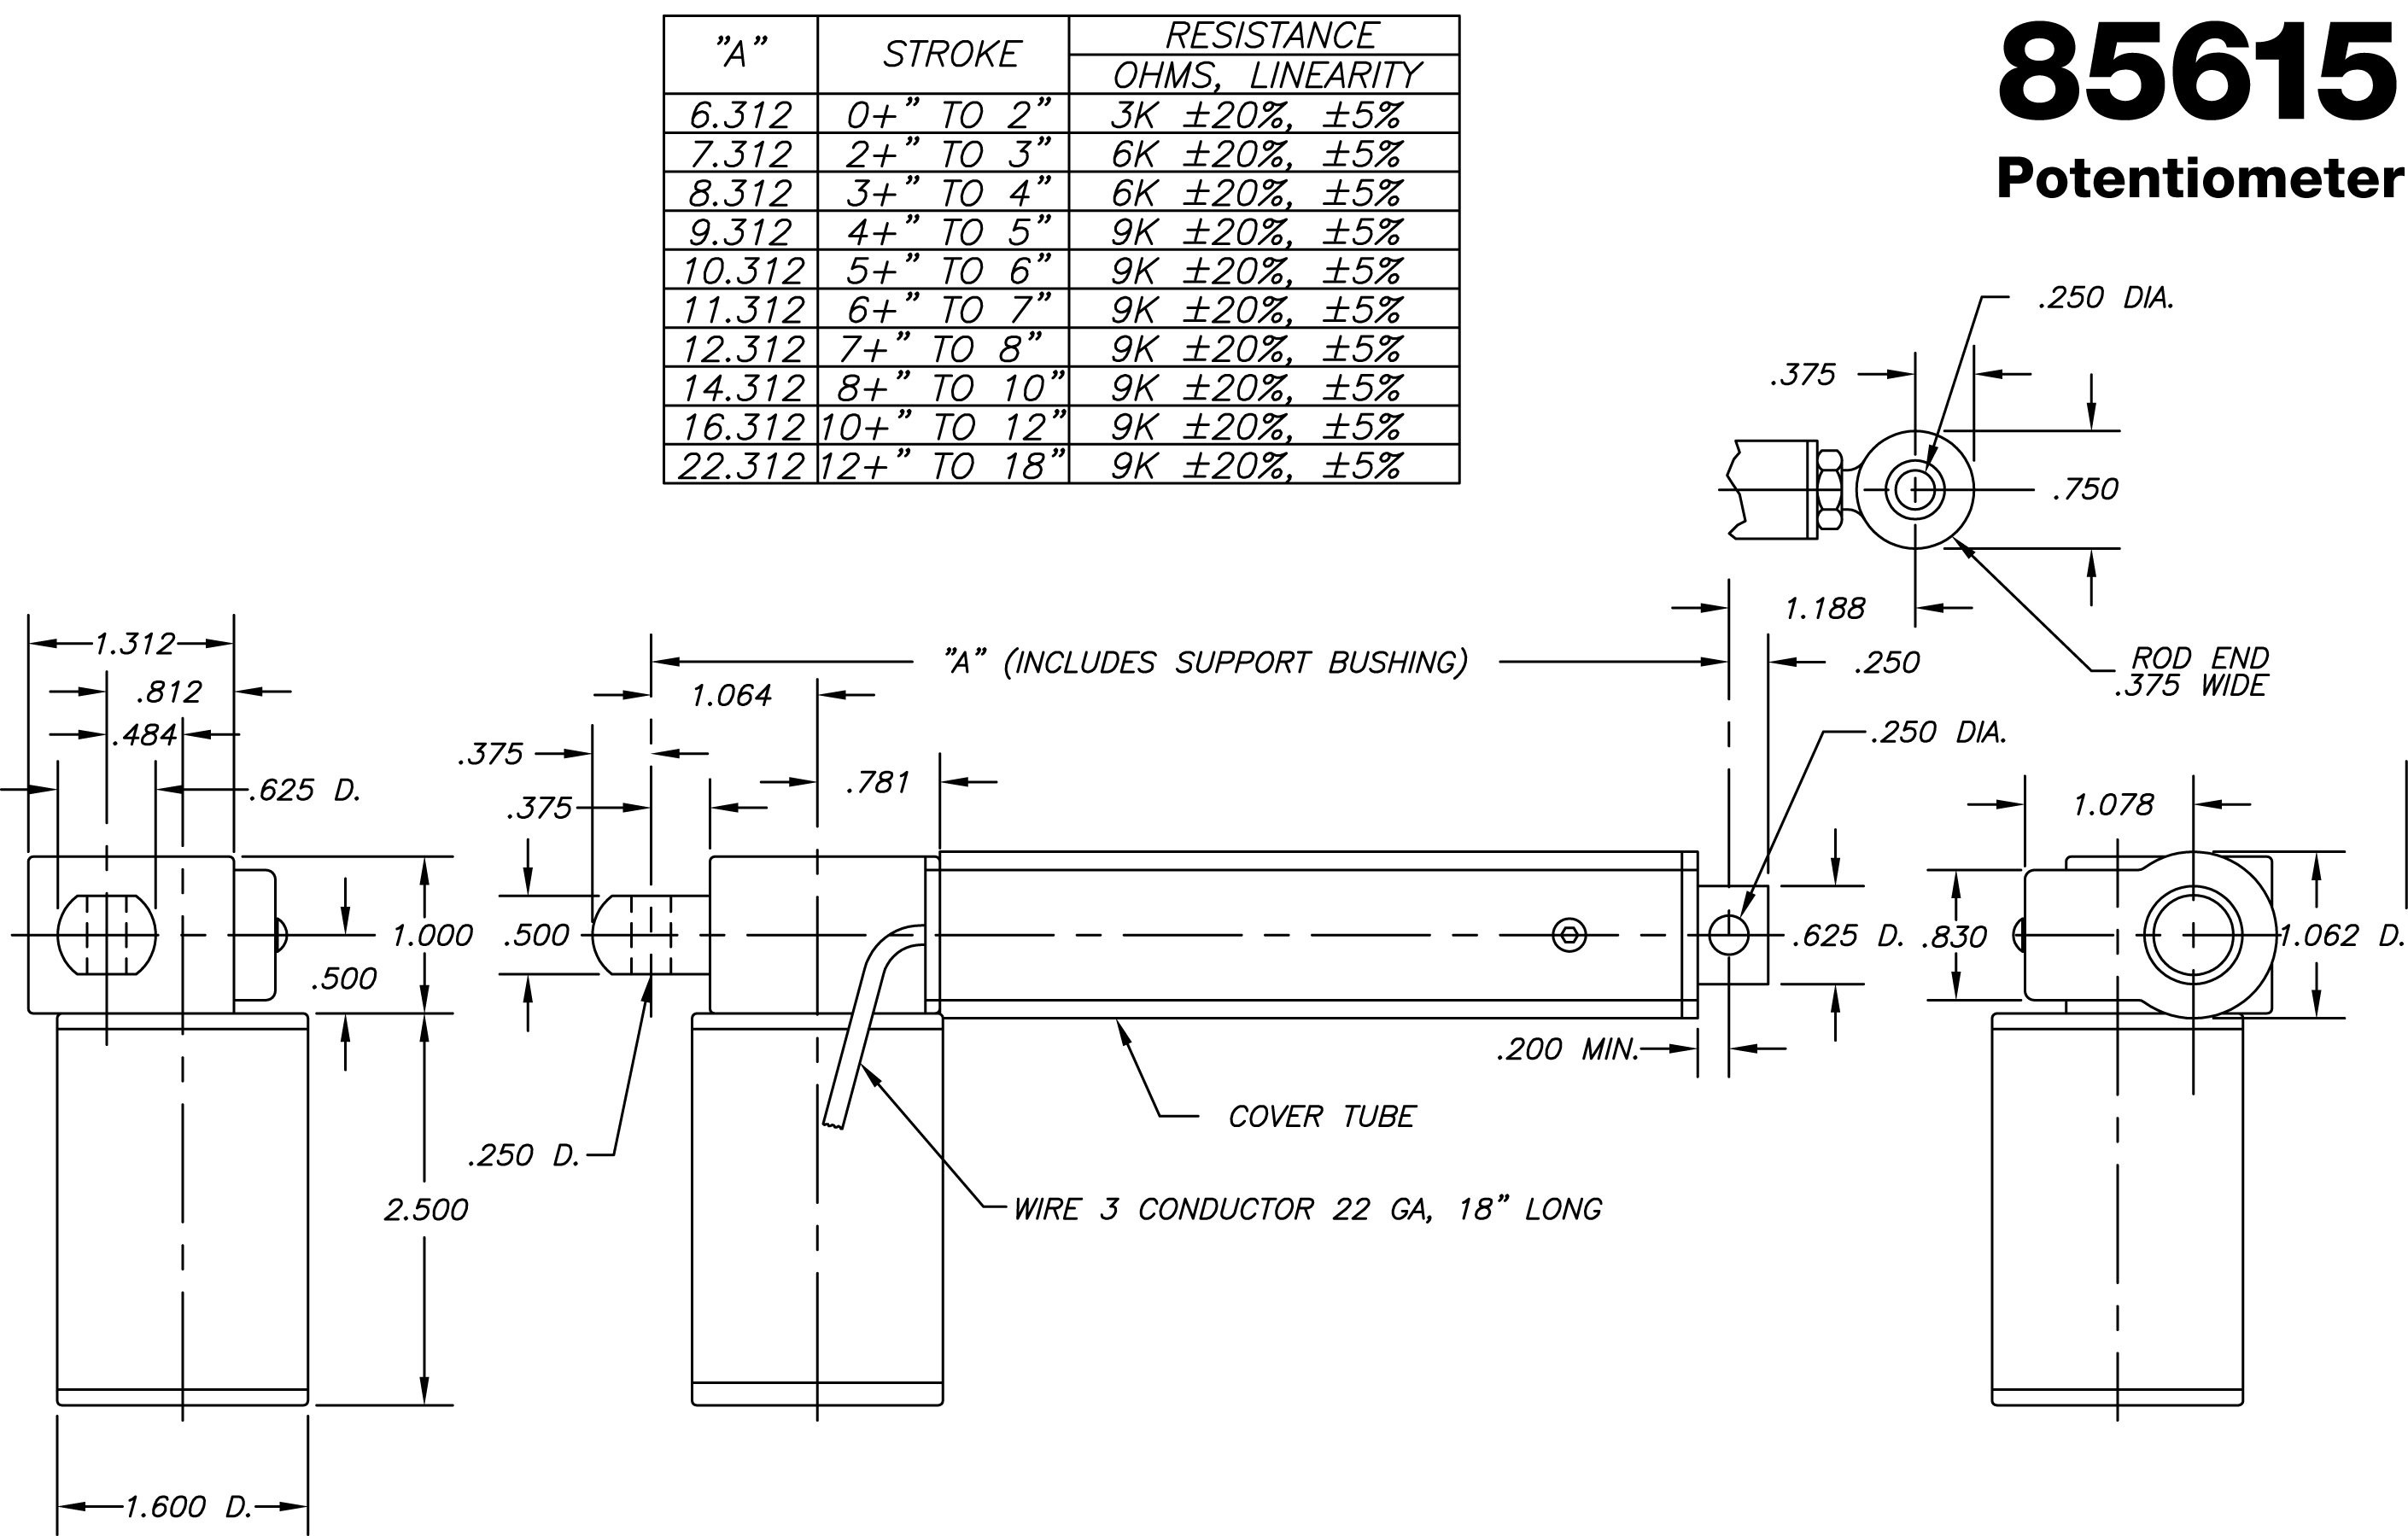 Potentiometer Circuit Diagram and Working Best Motion Systems Potentiometer Circuit Diagram and Working Best